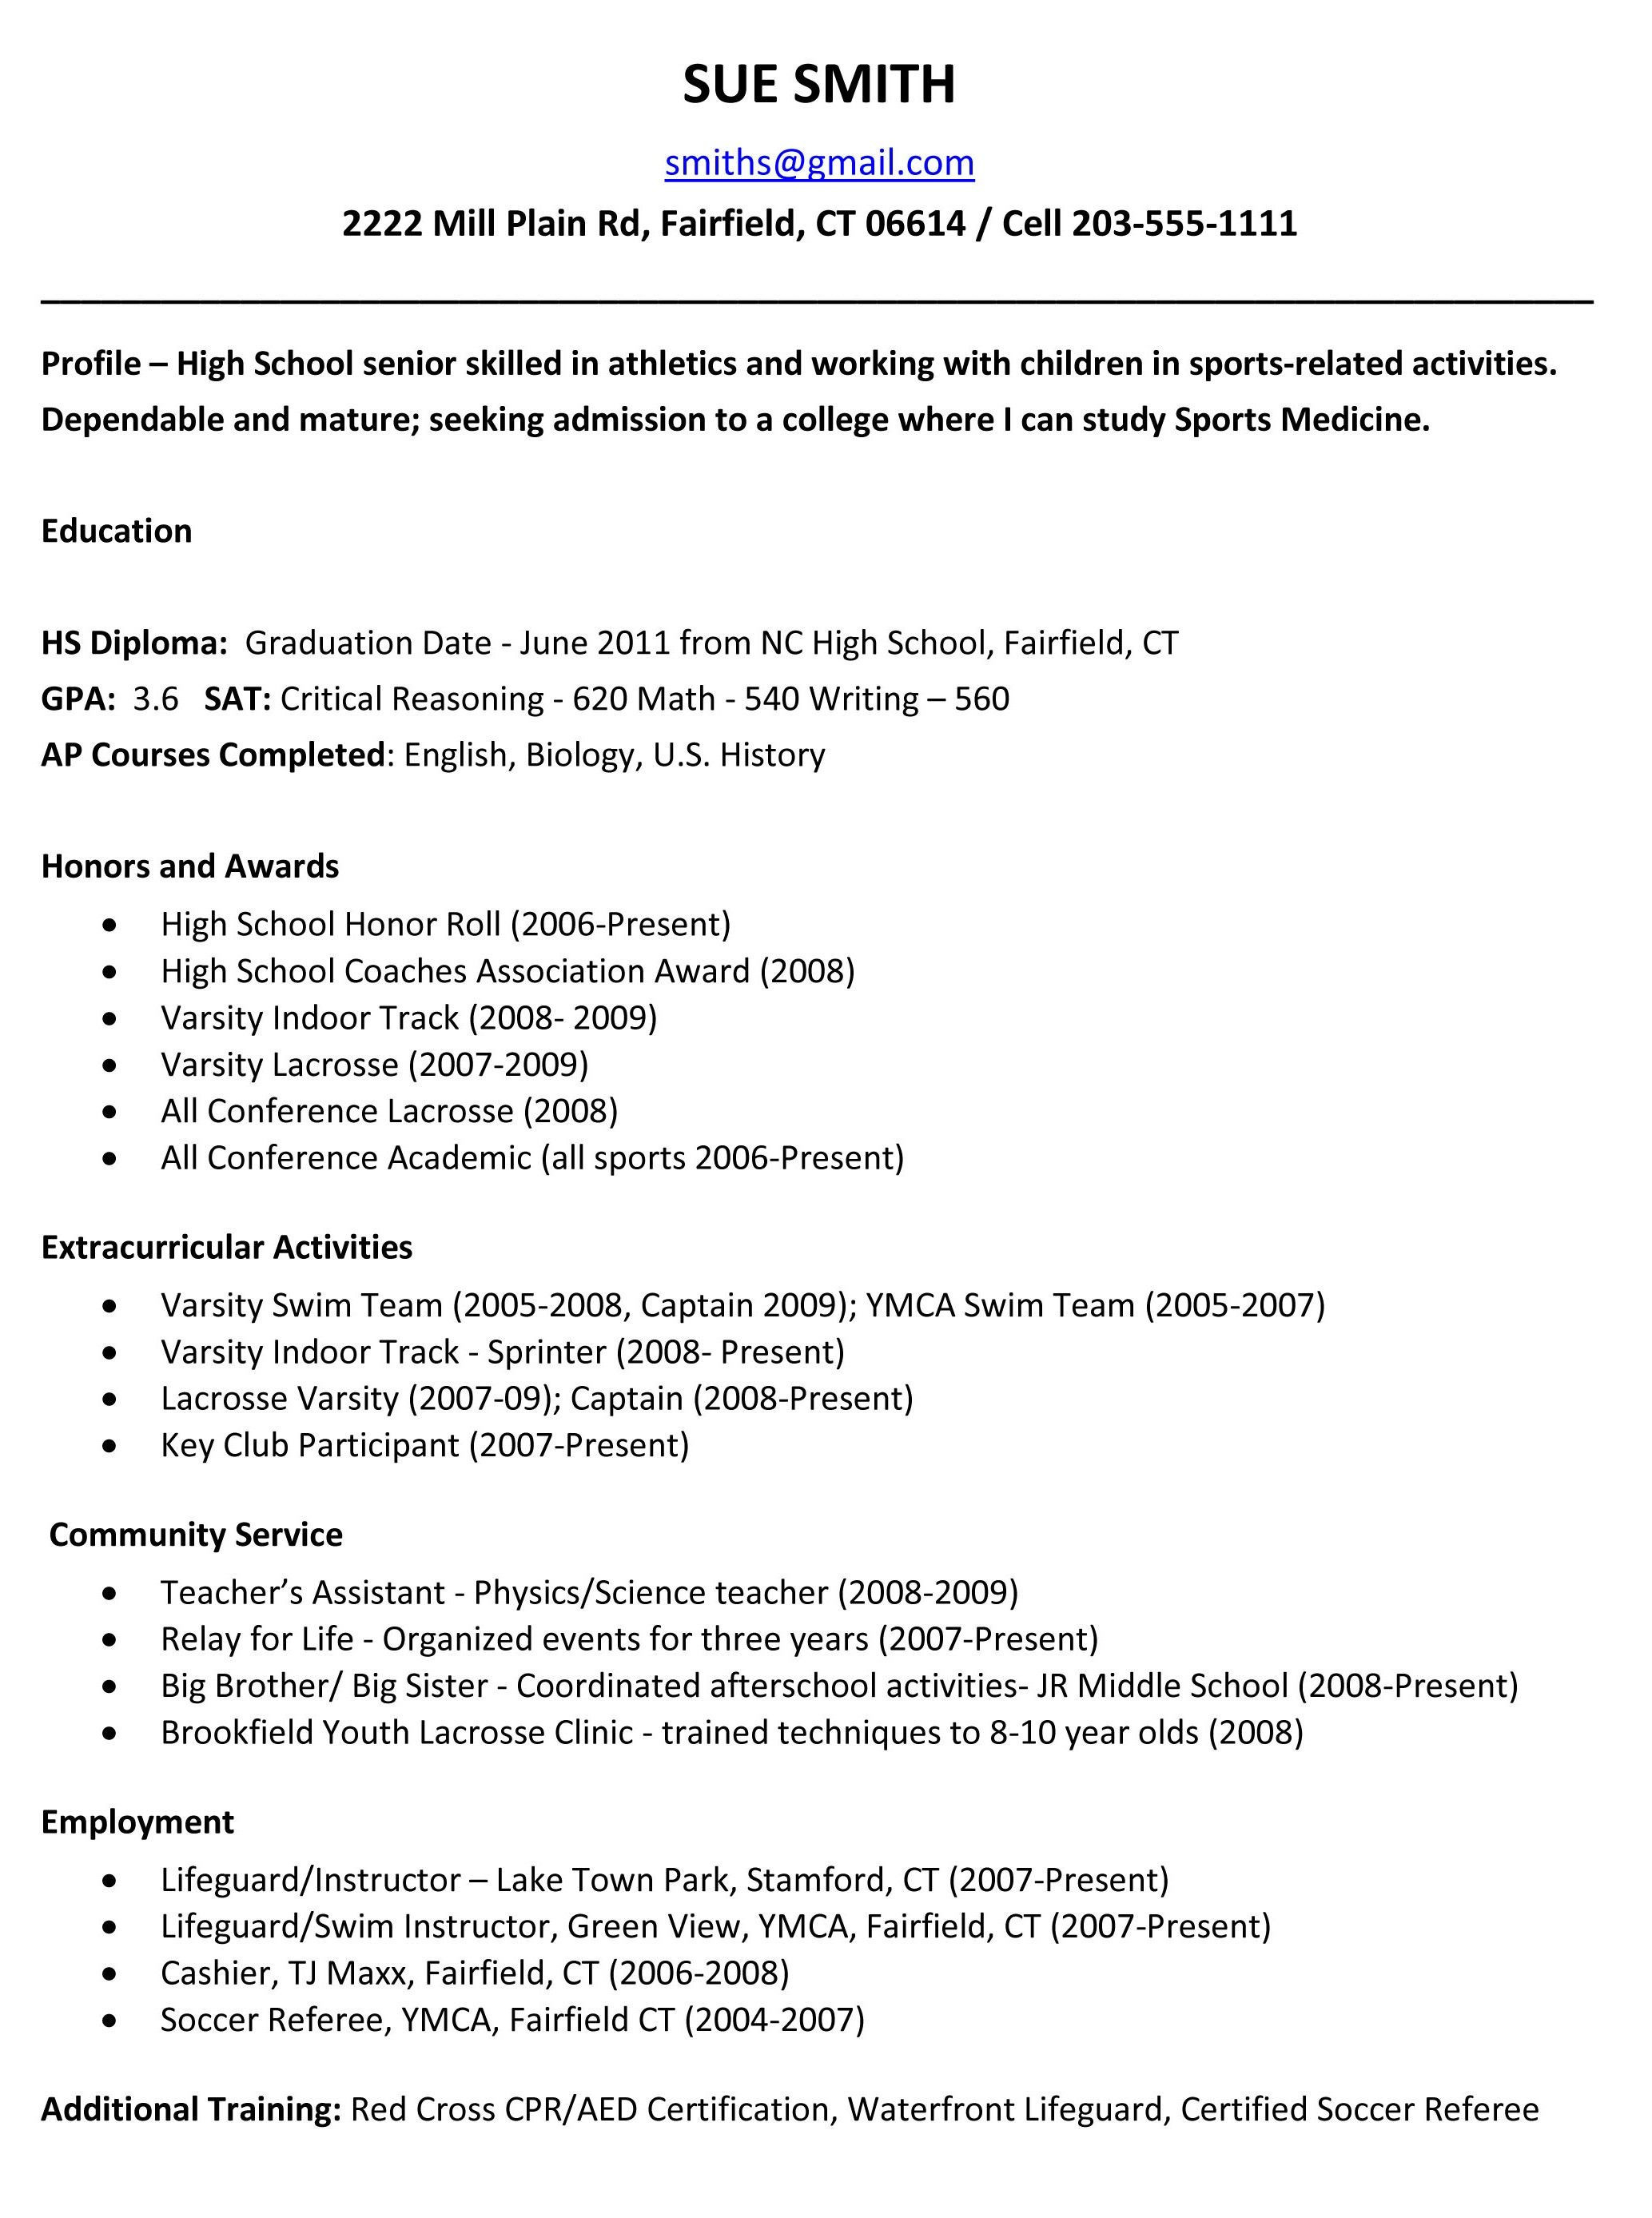 college resume for high school seniors example-Student Resume Samples For College Applications Fresh New Sample High School Resume For College Application 20-o